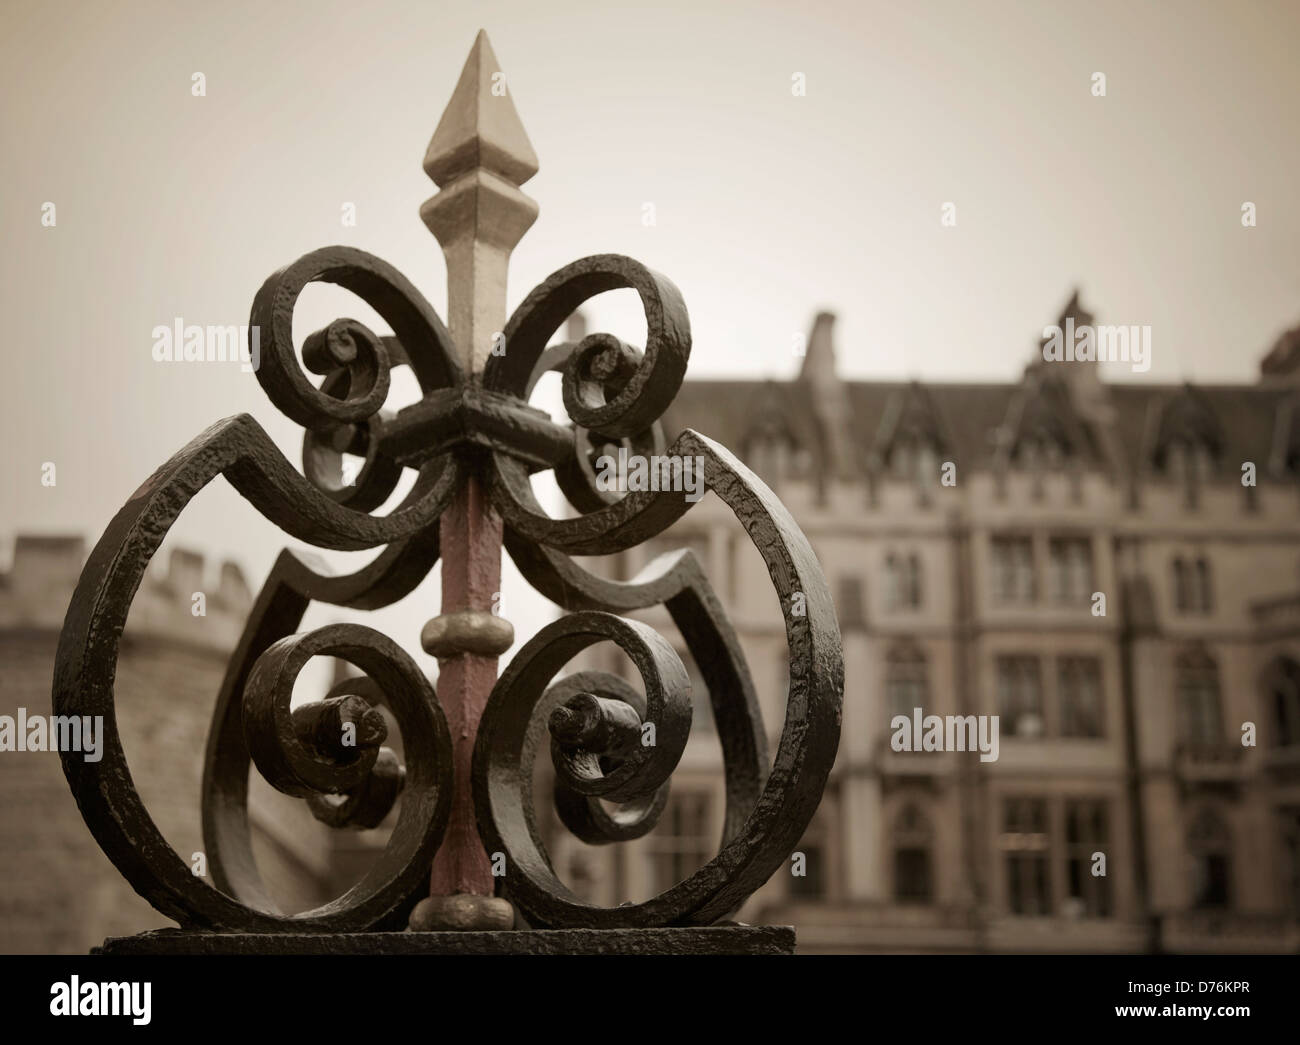 A detail of an ornamental cast iron fence with Dean's Yard in the background, London, UK. - Stock Image